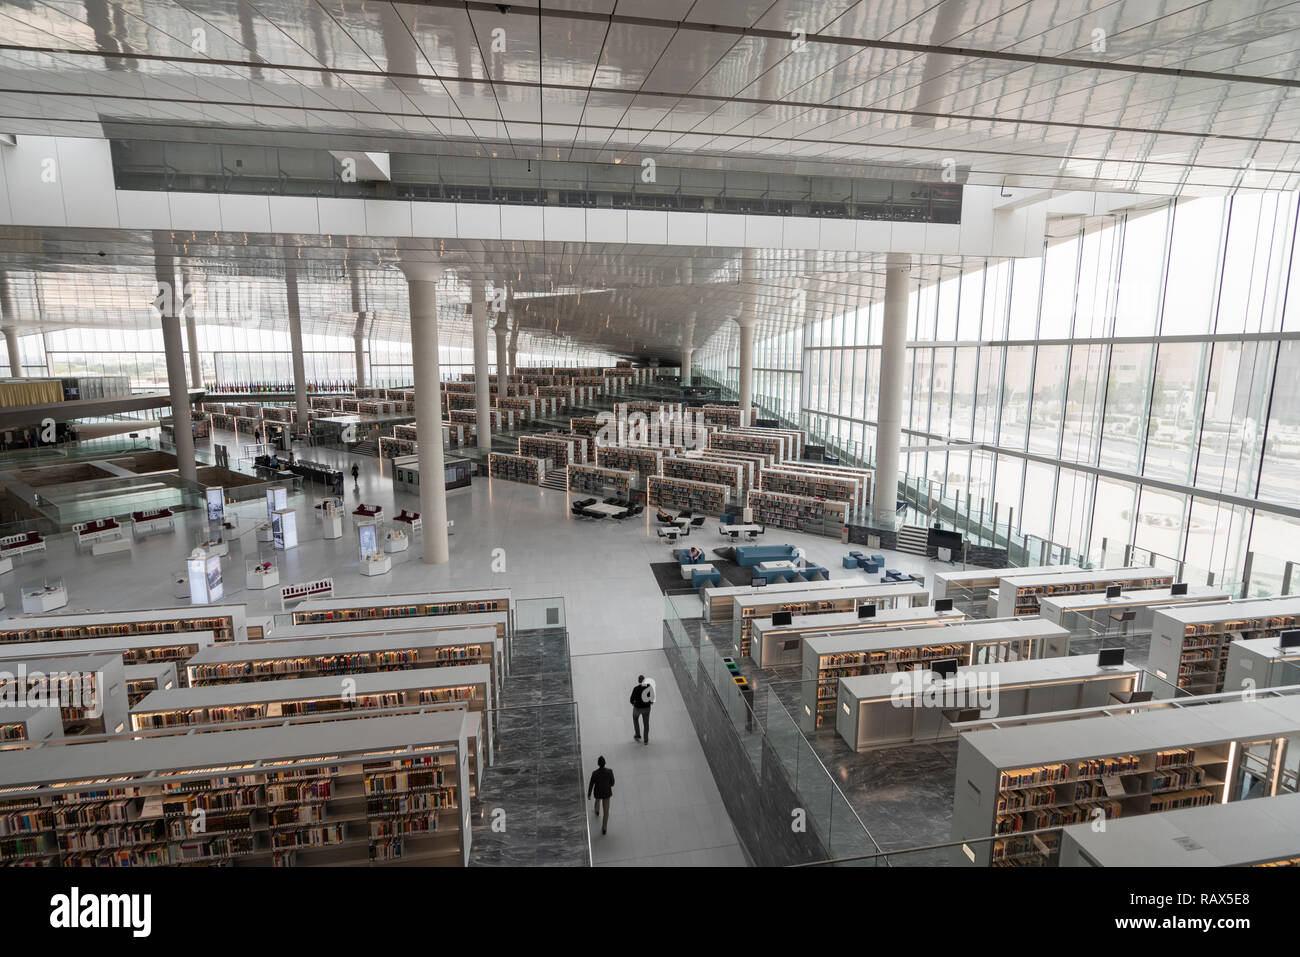 New Qatar national Library in Education City, Doha, Qatar. Architect, Rem Koolhaas. - Stock Image